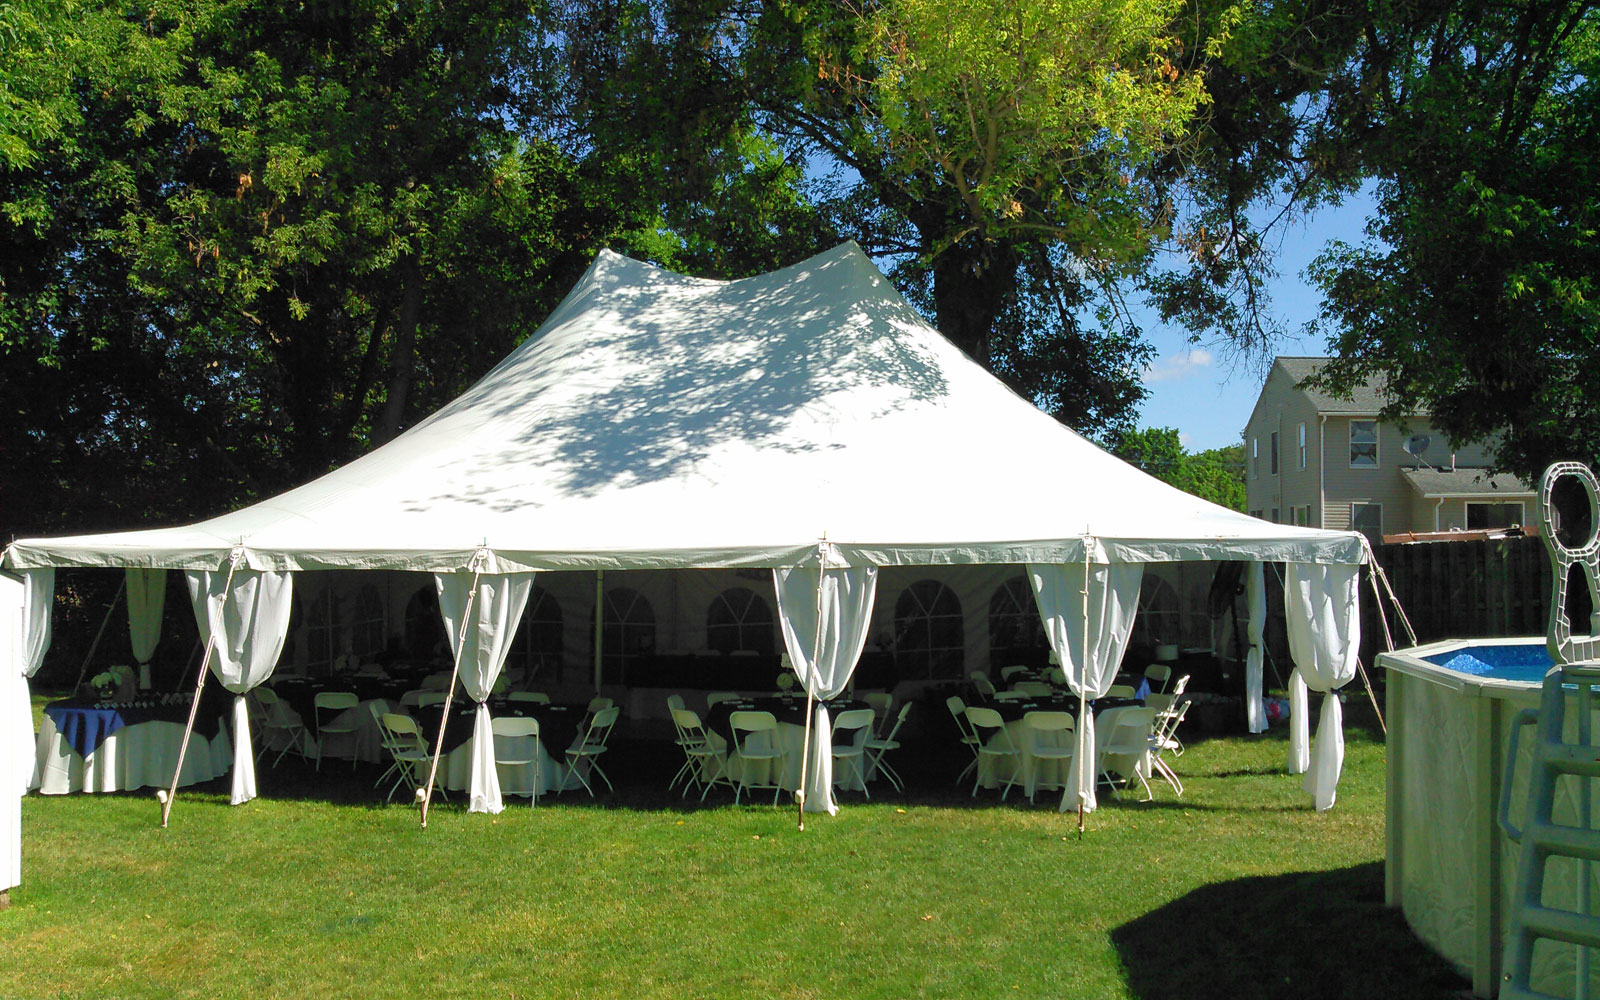 Tent And Chair Rentals Cline 39s Tent Rental Inc Cline 39s Tent Rental Inc